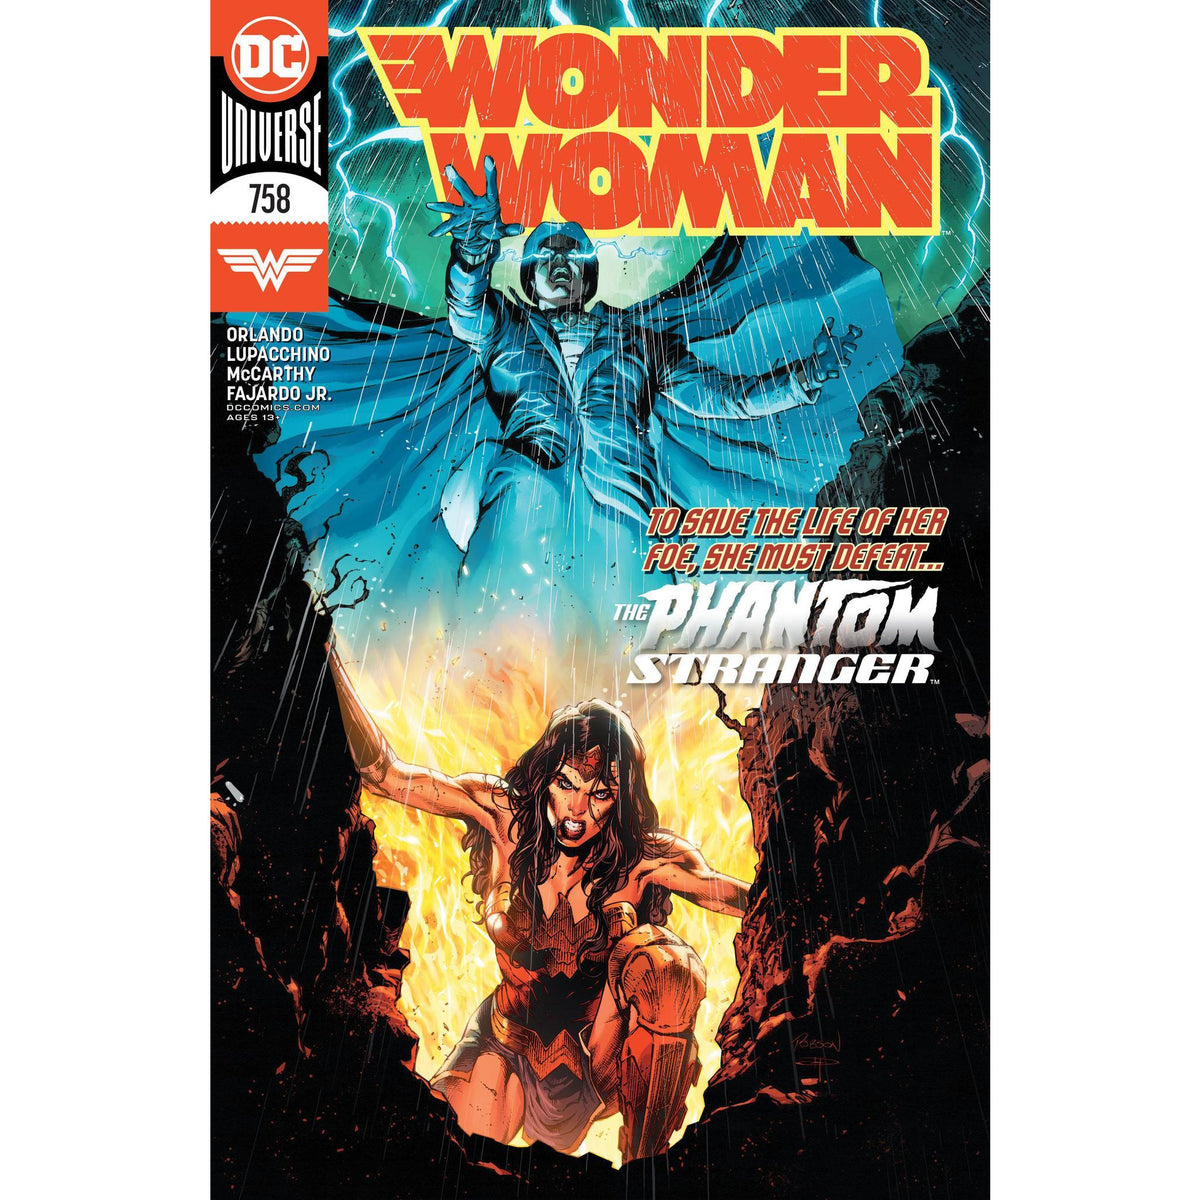 WONDER WOMAN #758 - ROCHA HENRIQUES MAIN COVER A